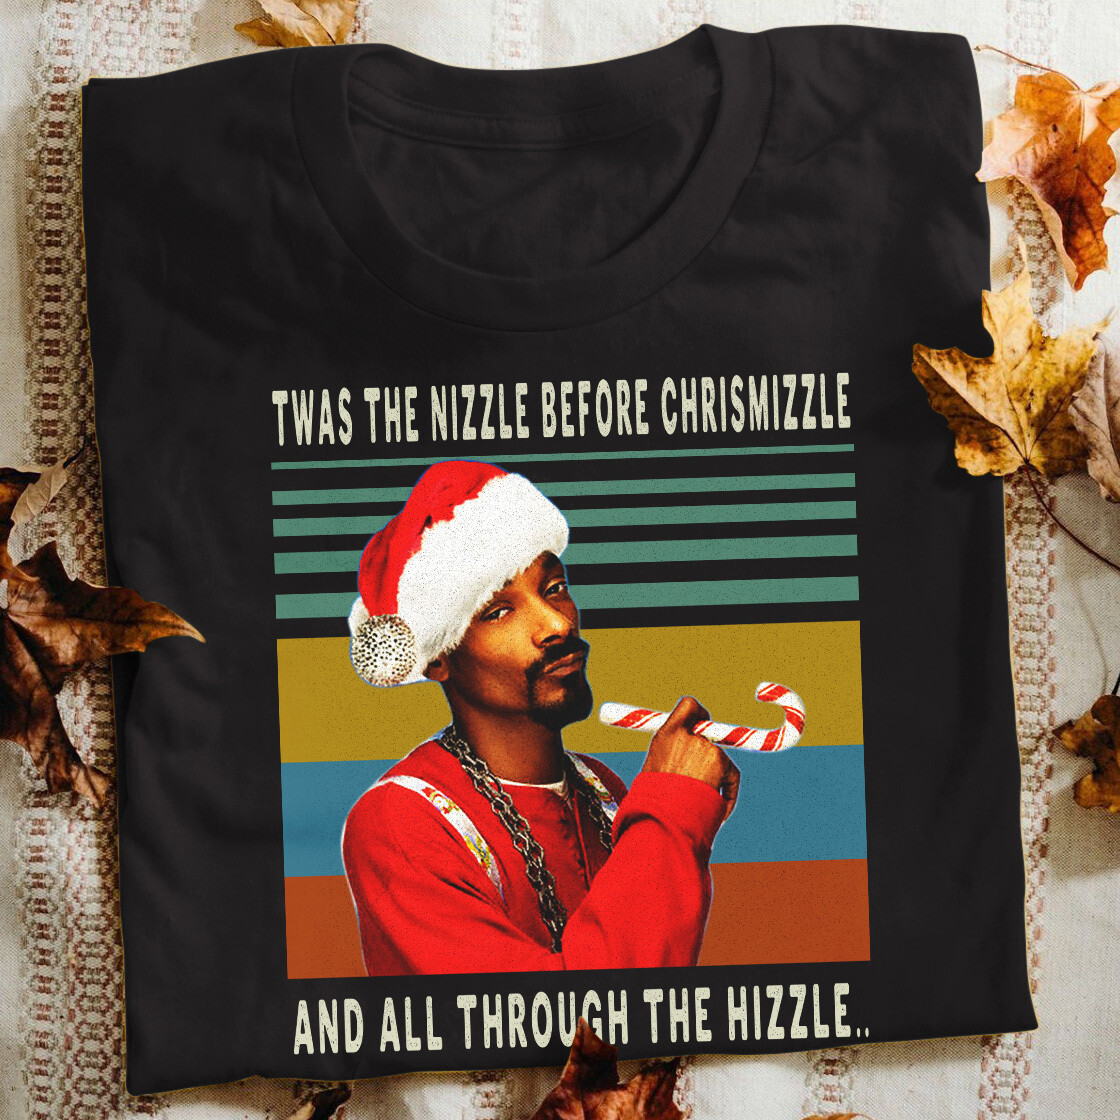 Snoop Dogg christmas Twas the nizzle before chrismizzle and all through the hizzle ugly christmas sweater santa ,Snoop Christmas Design, Christmas Sublimation design, Snoop Twas The Nizzle shirt